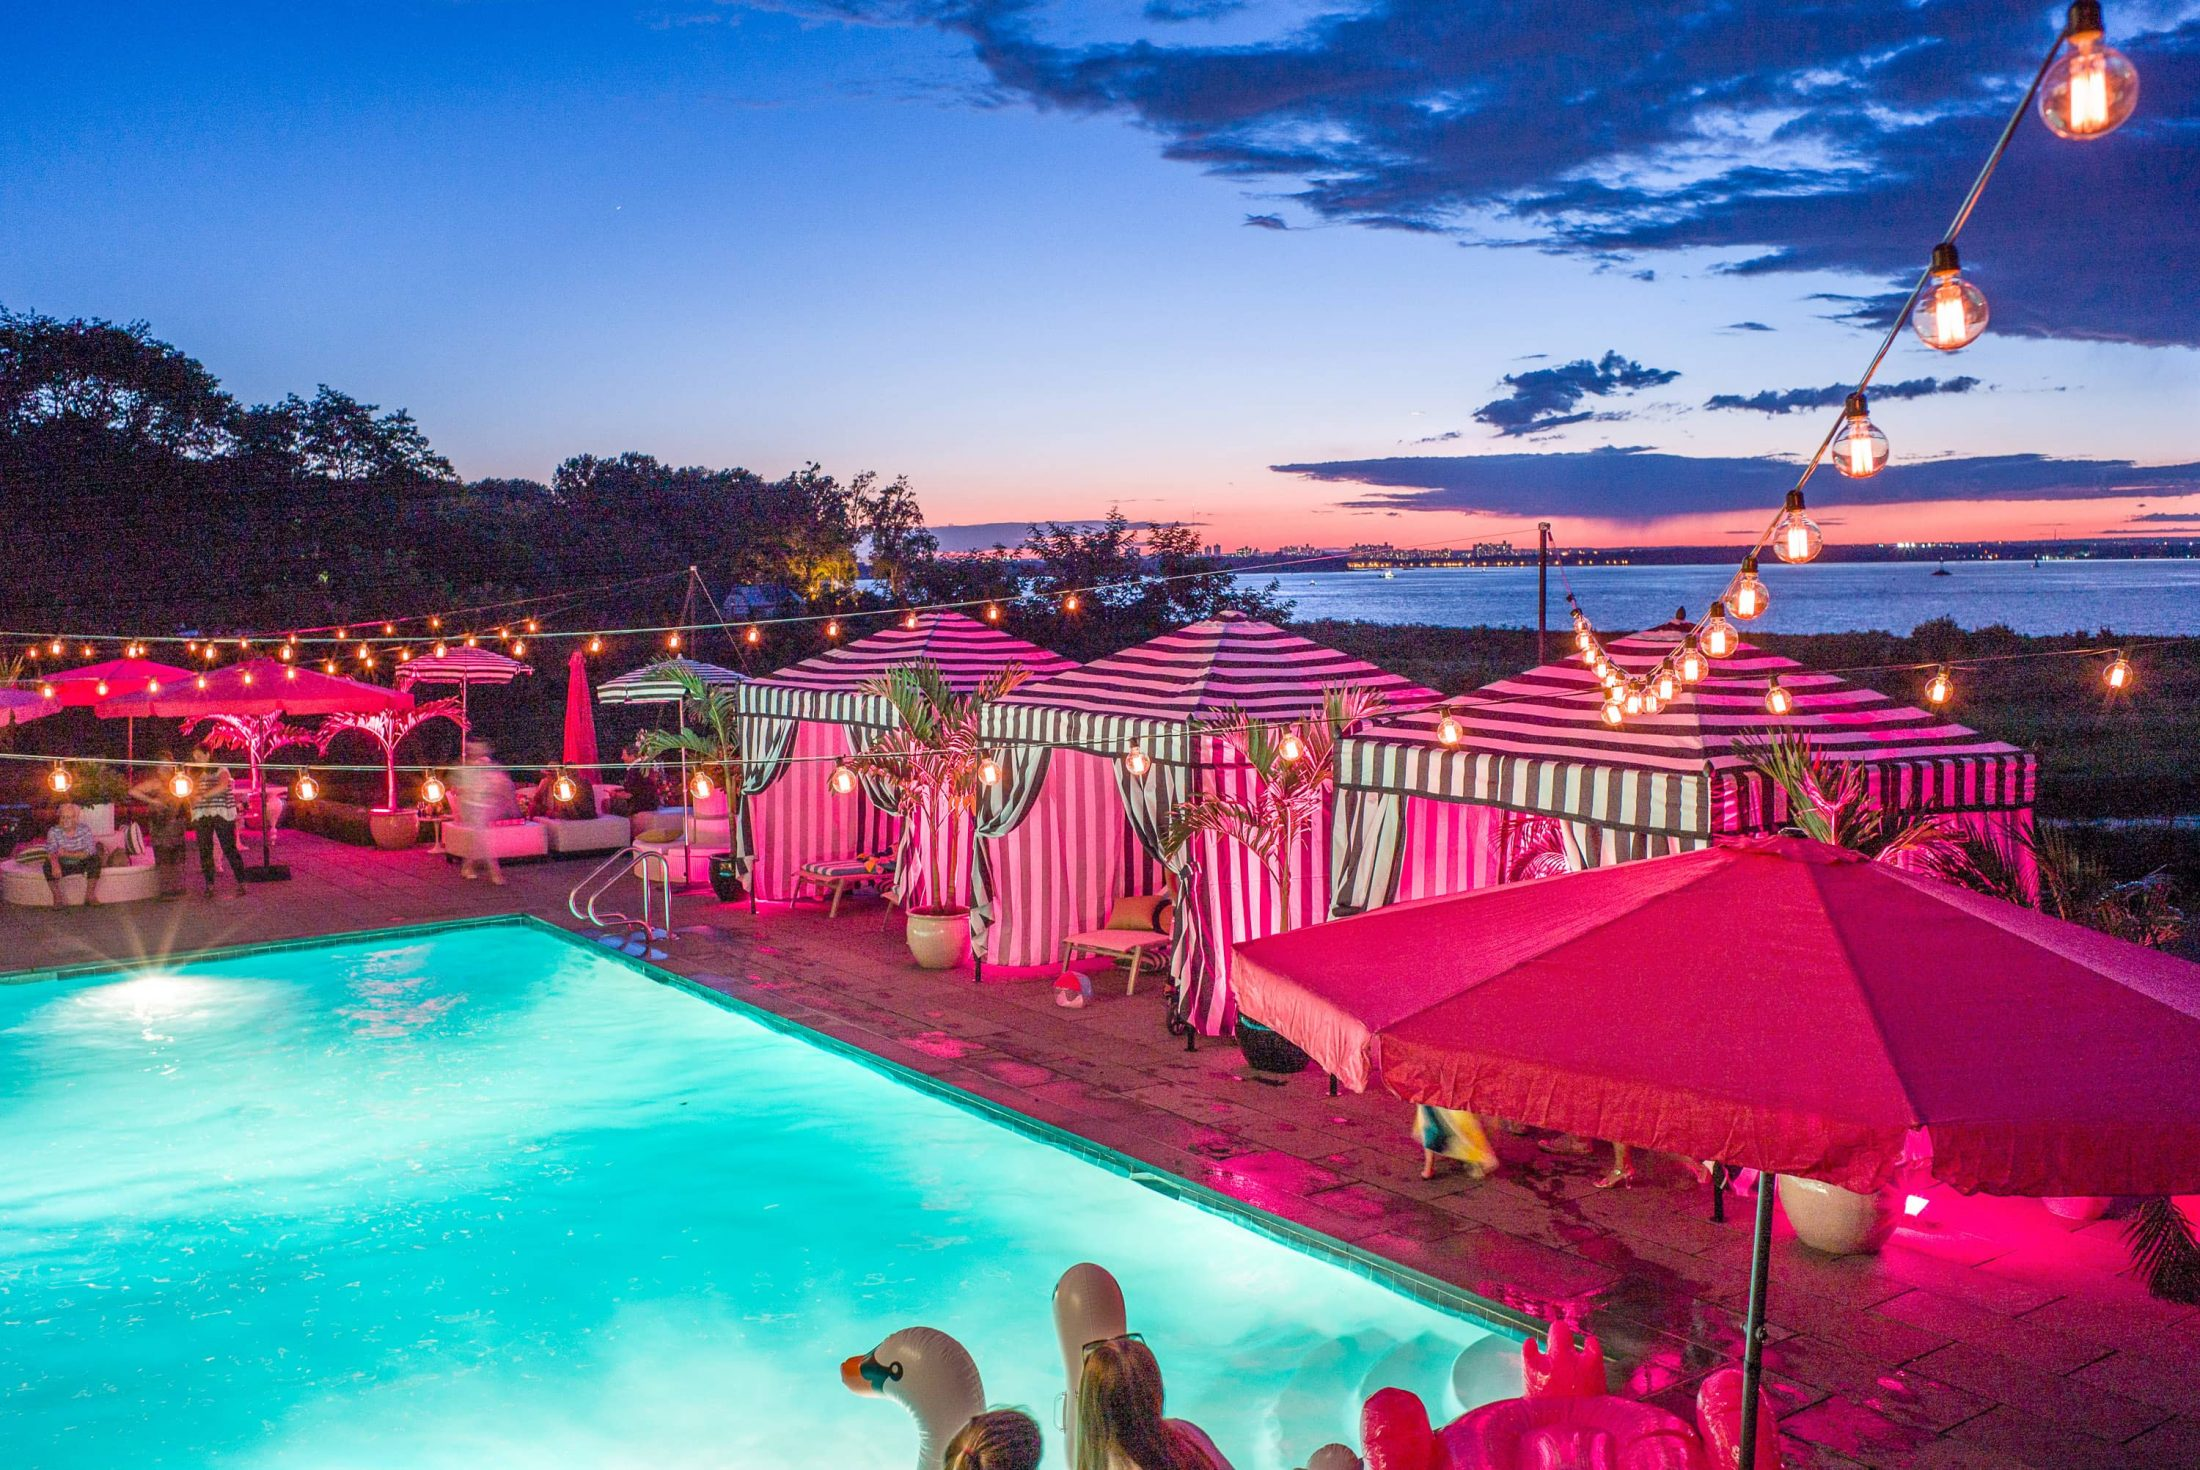 Nighttime with pink lights to create a Saint Tropez theme at this first birthday pool party in the Hamptons | Photo by Cava Photo